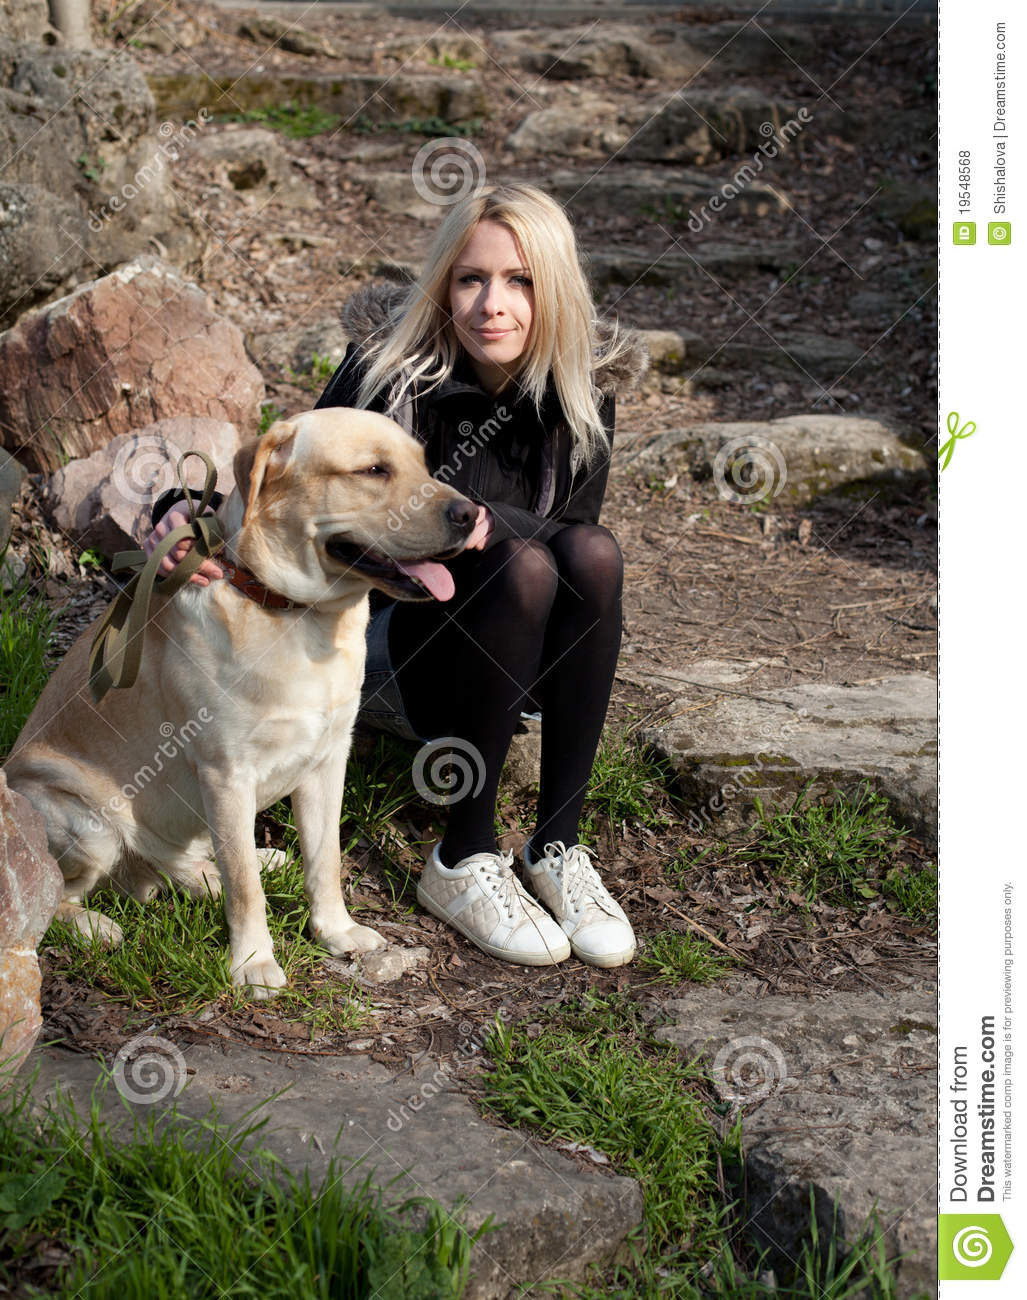 Single frauen mit hund